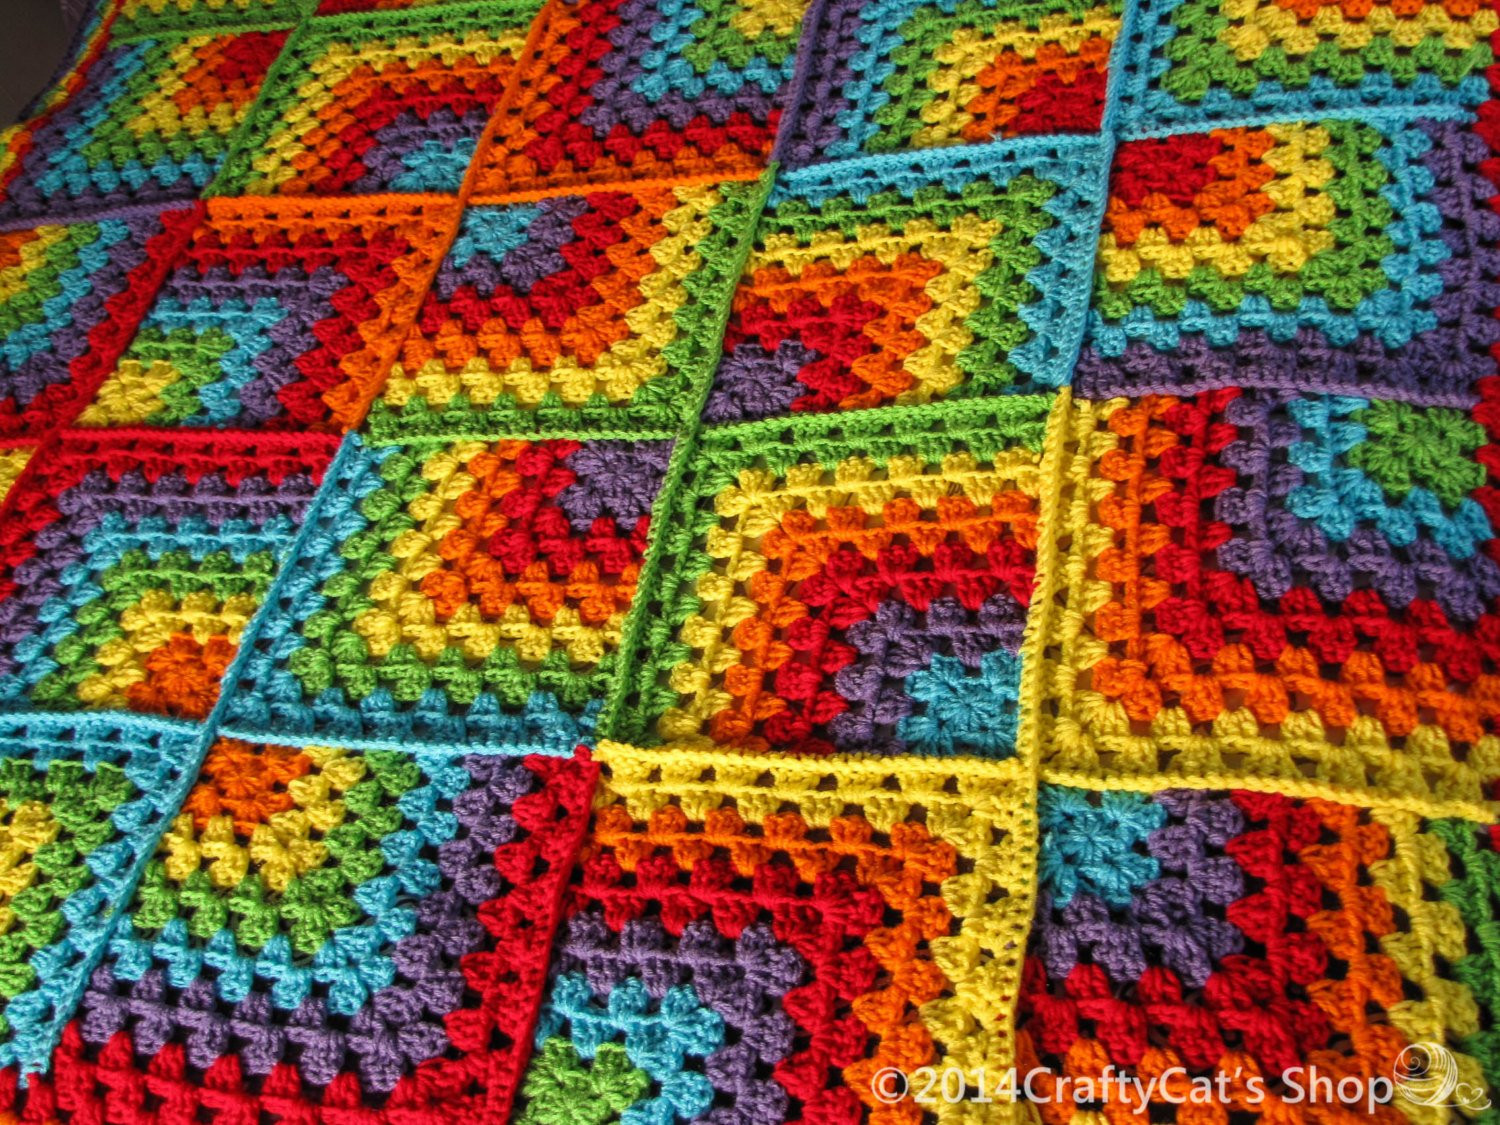 Beautiful Rainbow Crochet Throw Handmade Mitered Granny Square Blanket Rainbow Crochet Blanket Of Great 40 Photos Rainbow Crochet Blanket